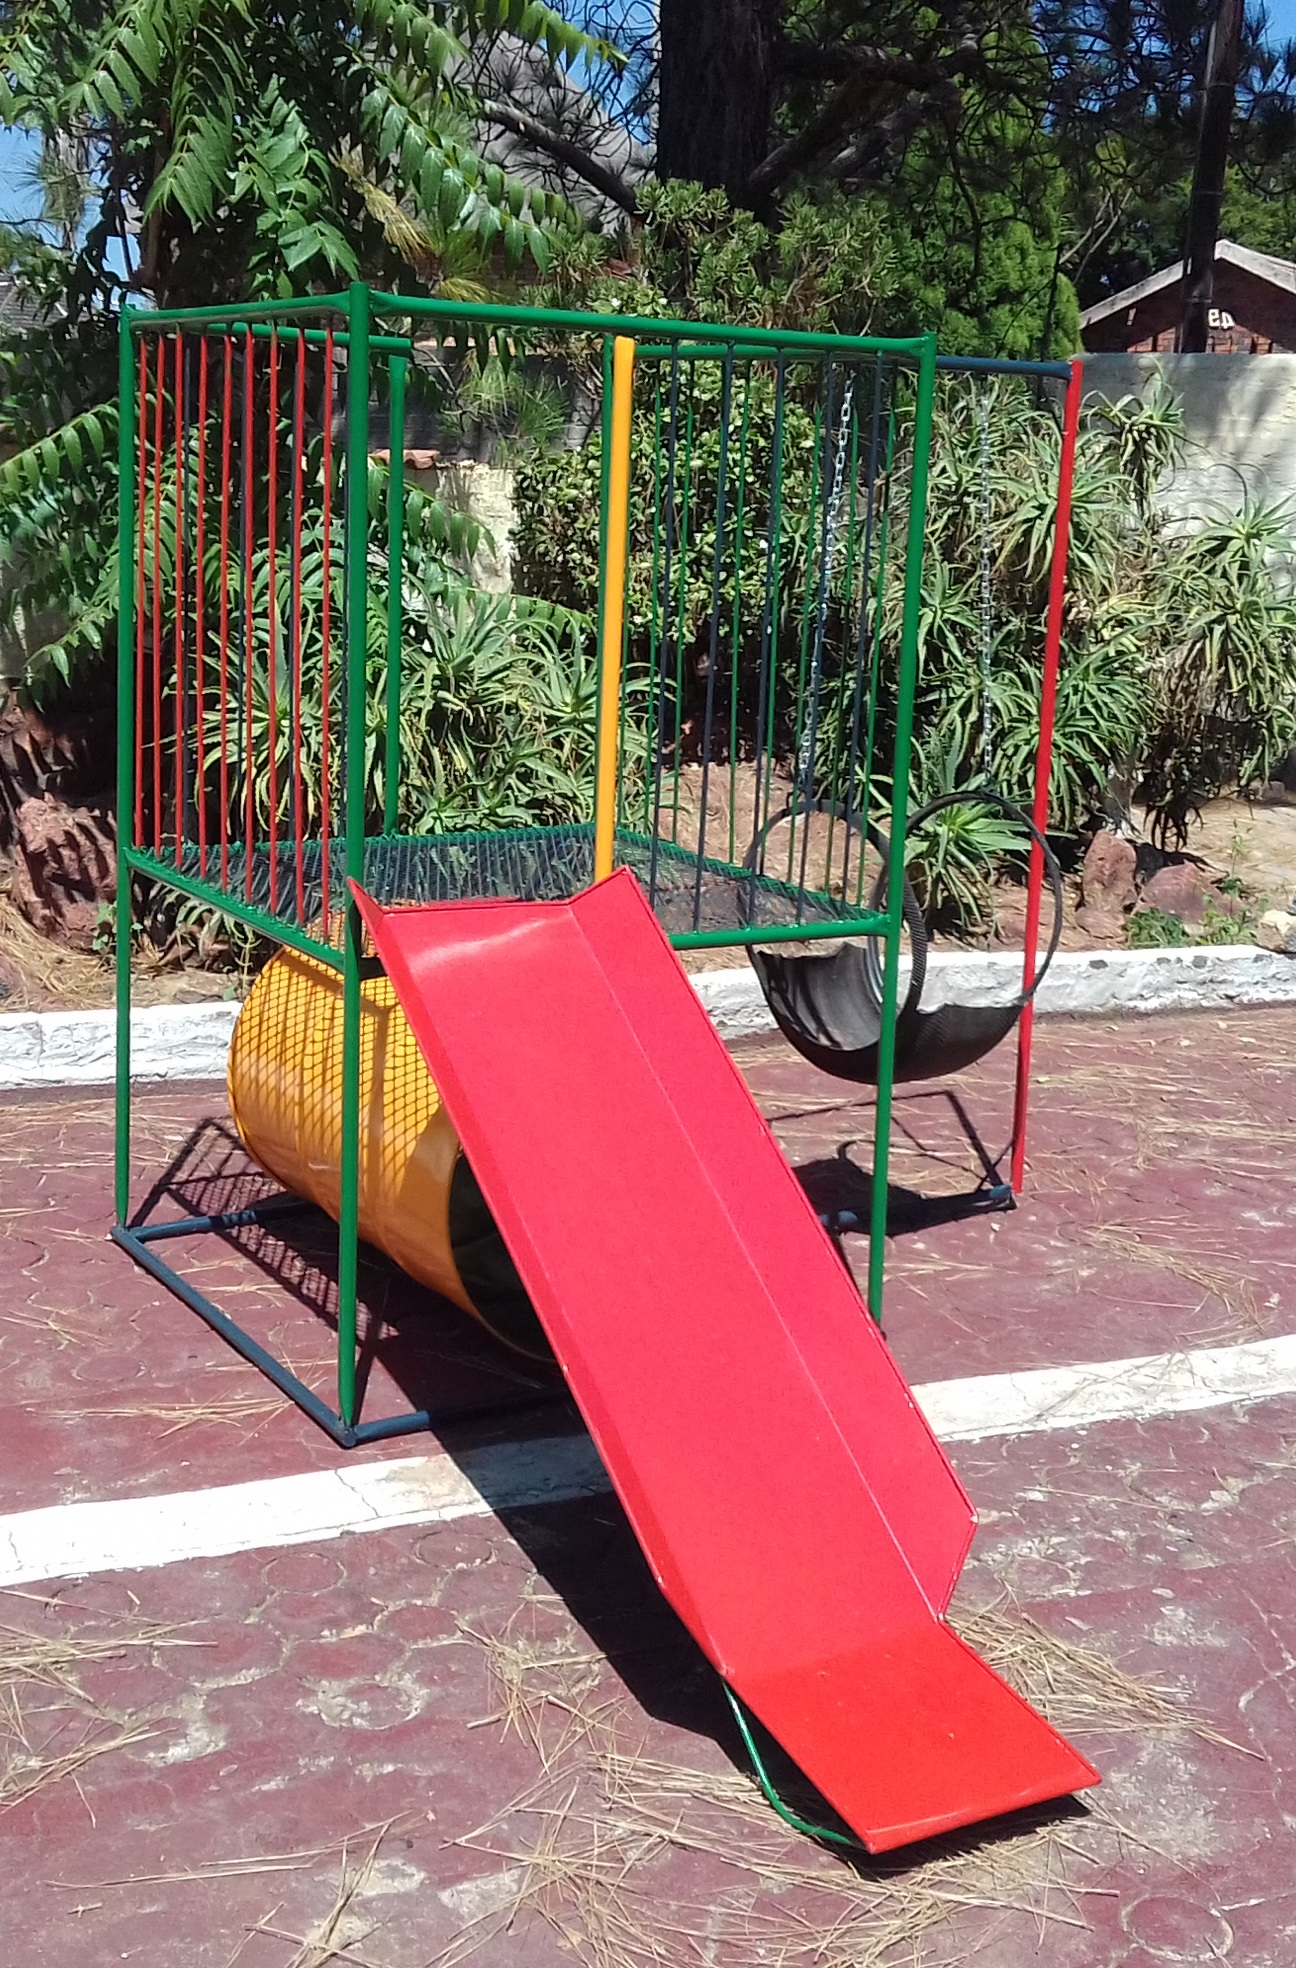 Baby Jungle Gym for Sale: